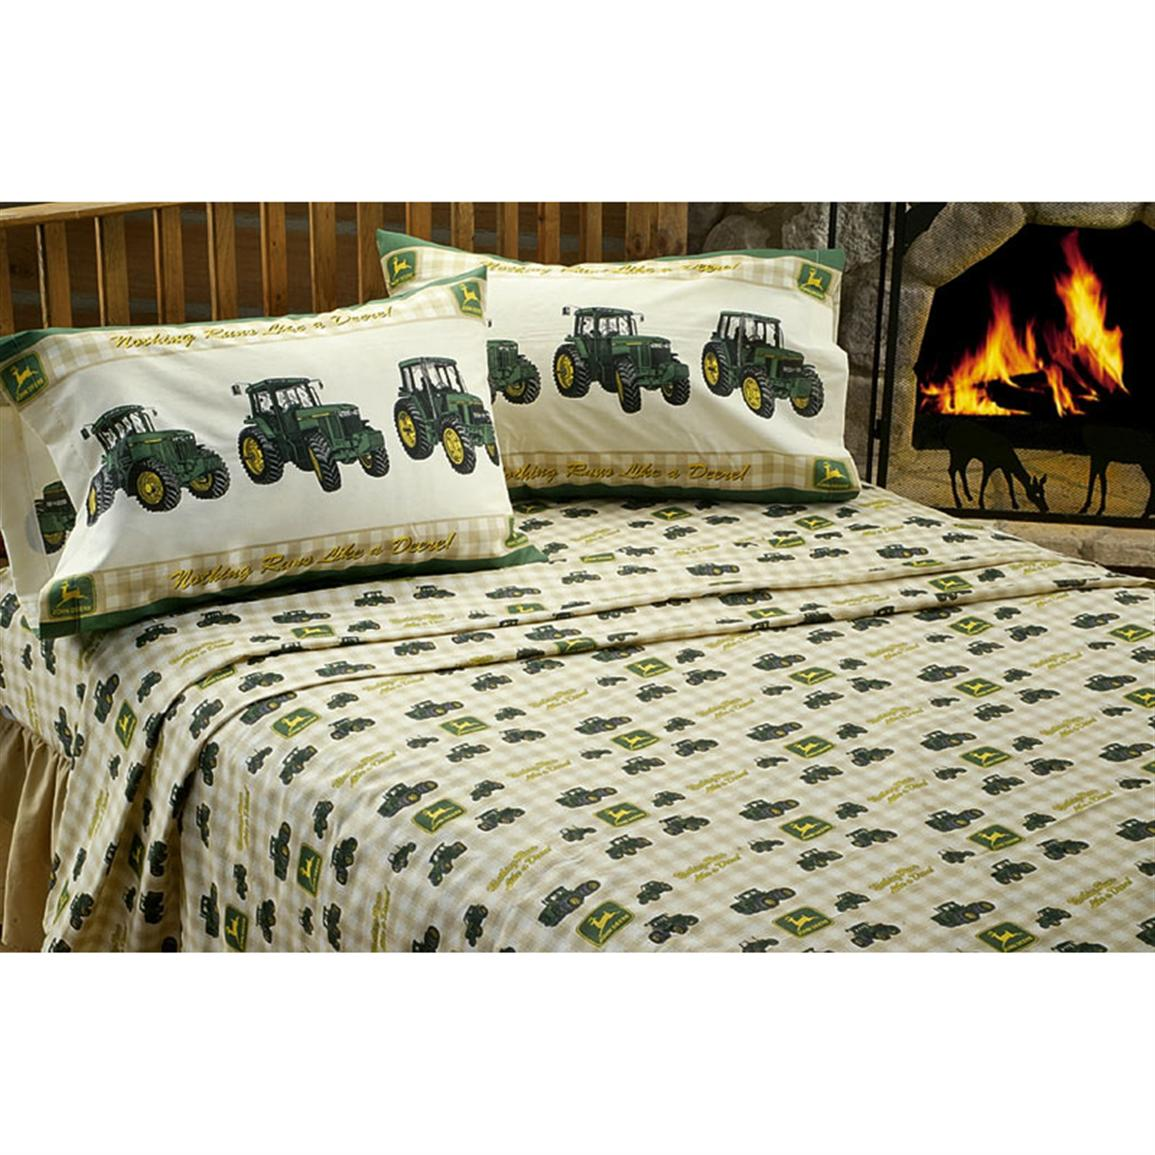 John Deere Bedding | John Deere Toddler Bed | John Deere Pillow